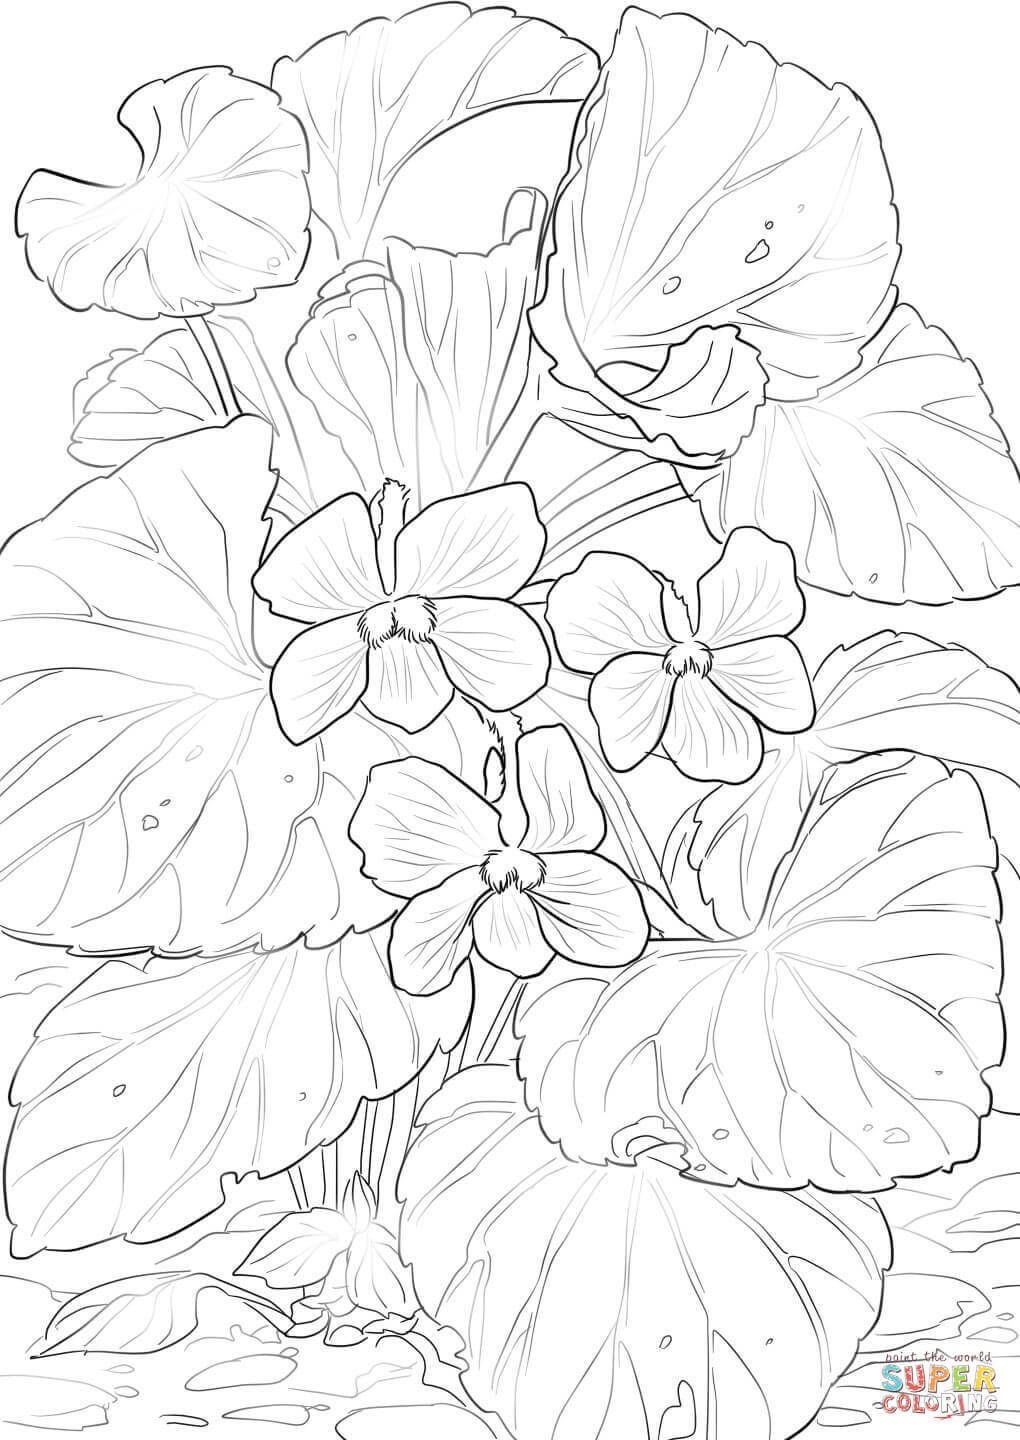 Wood Violets Flower Coloring Pages Coloring Pages Detailed Coloring Pages